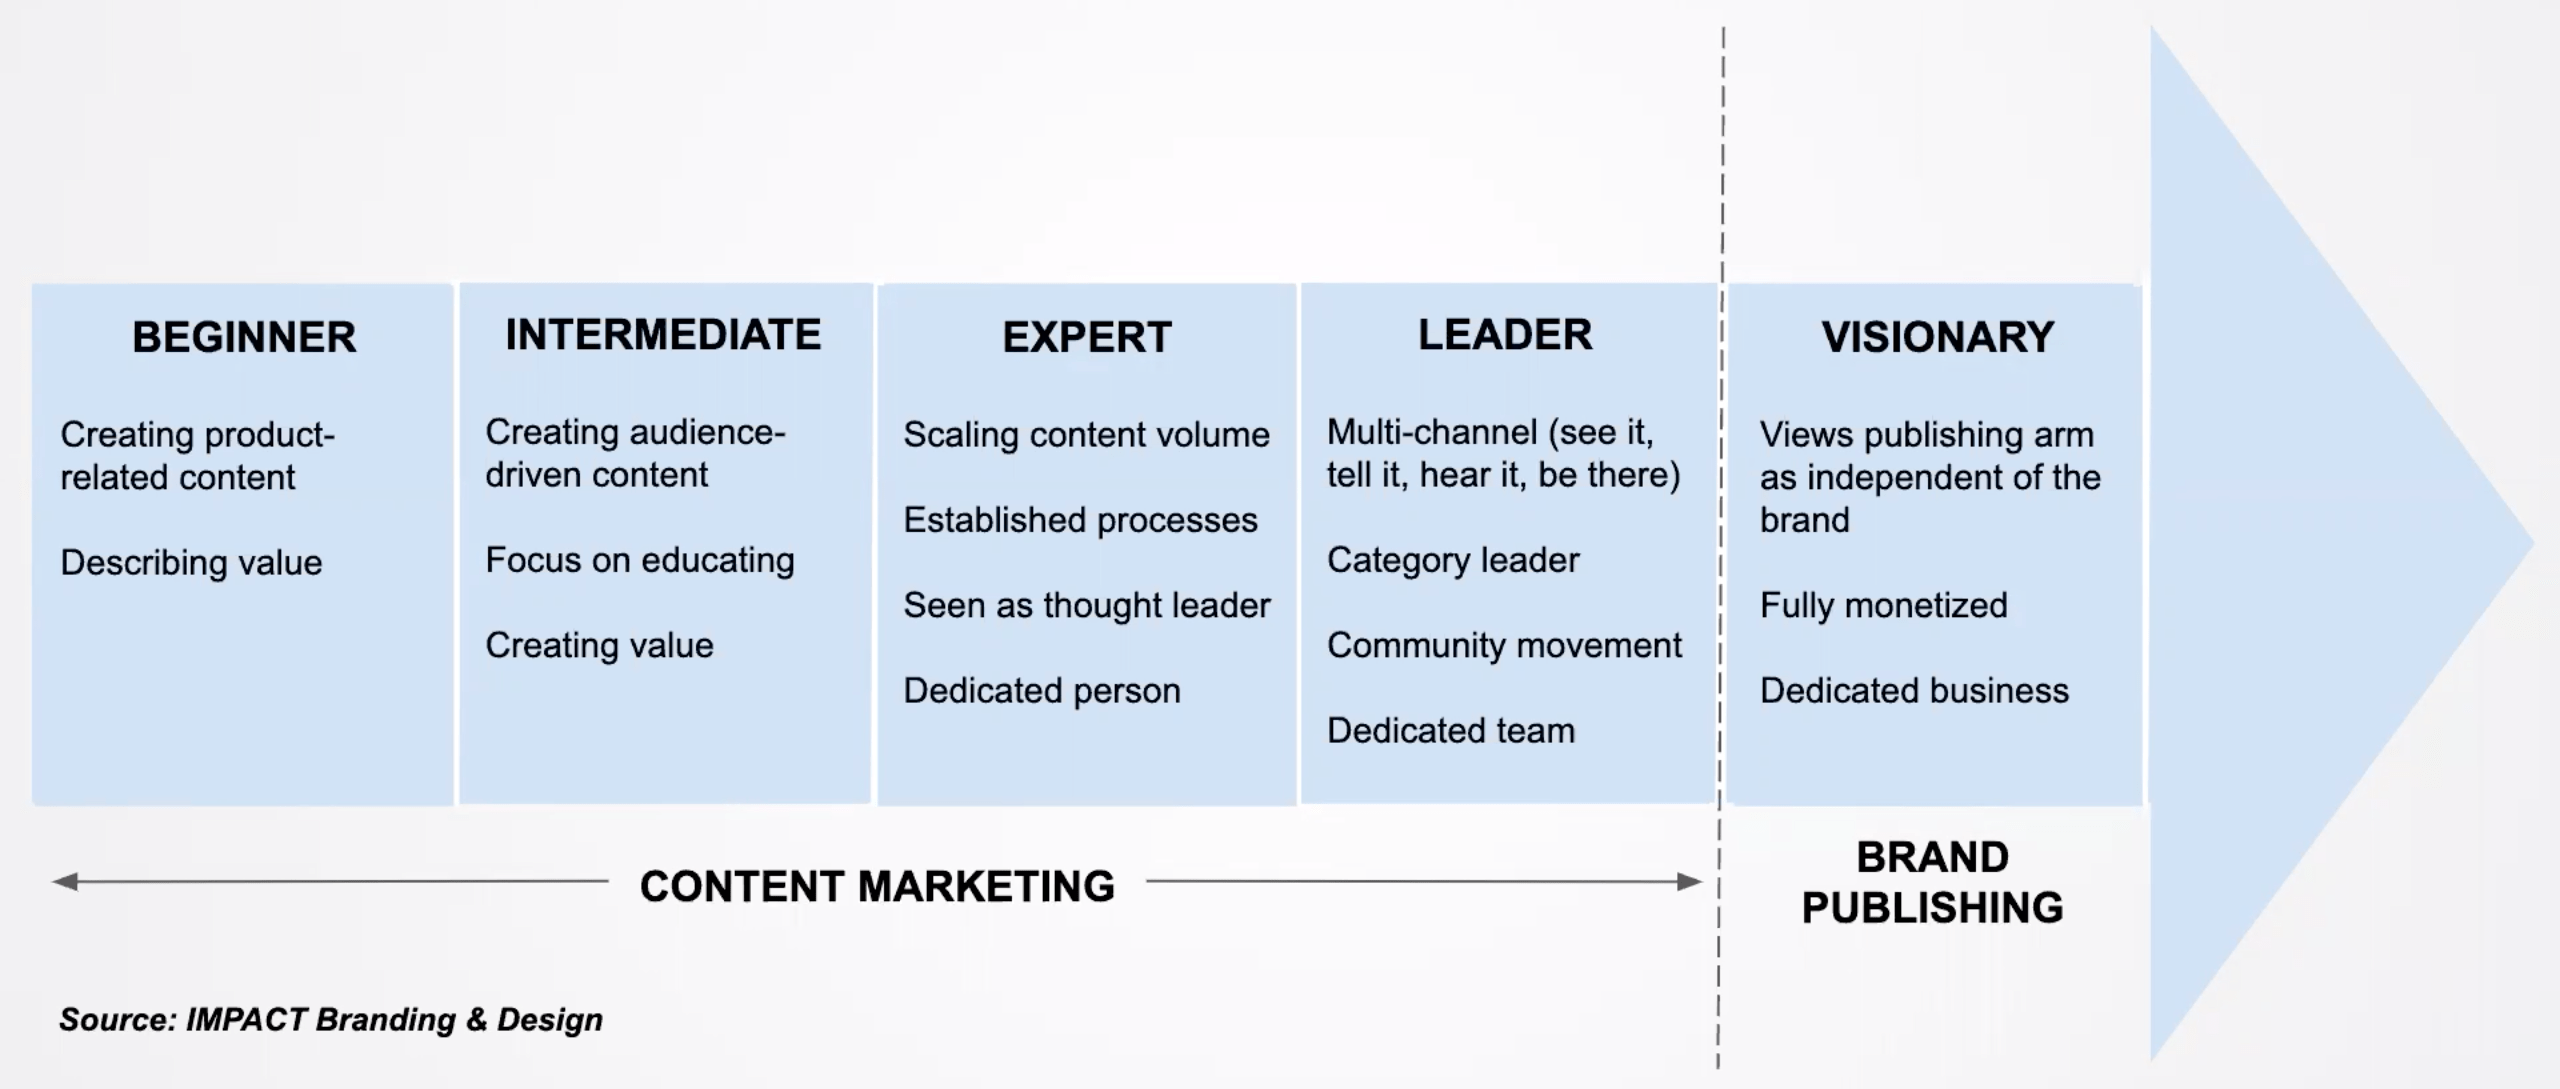 content-marketing-vision